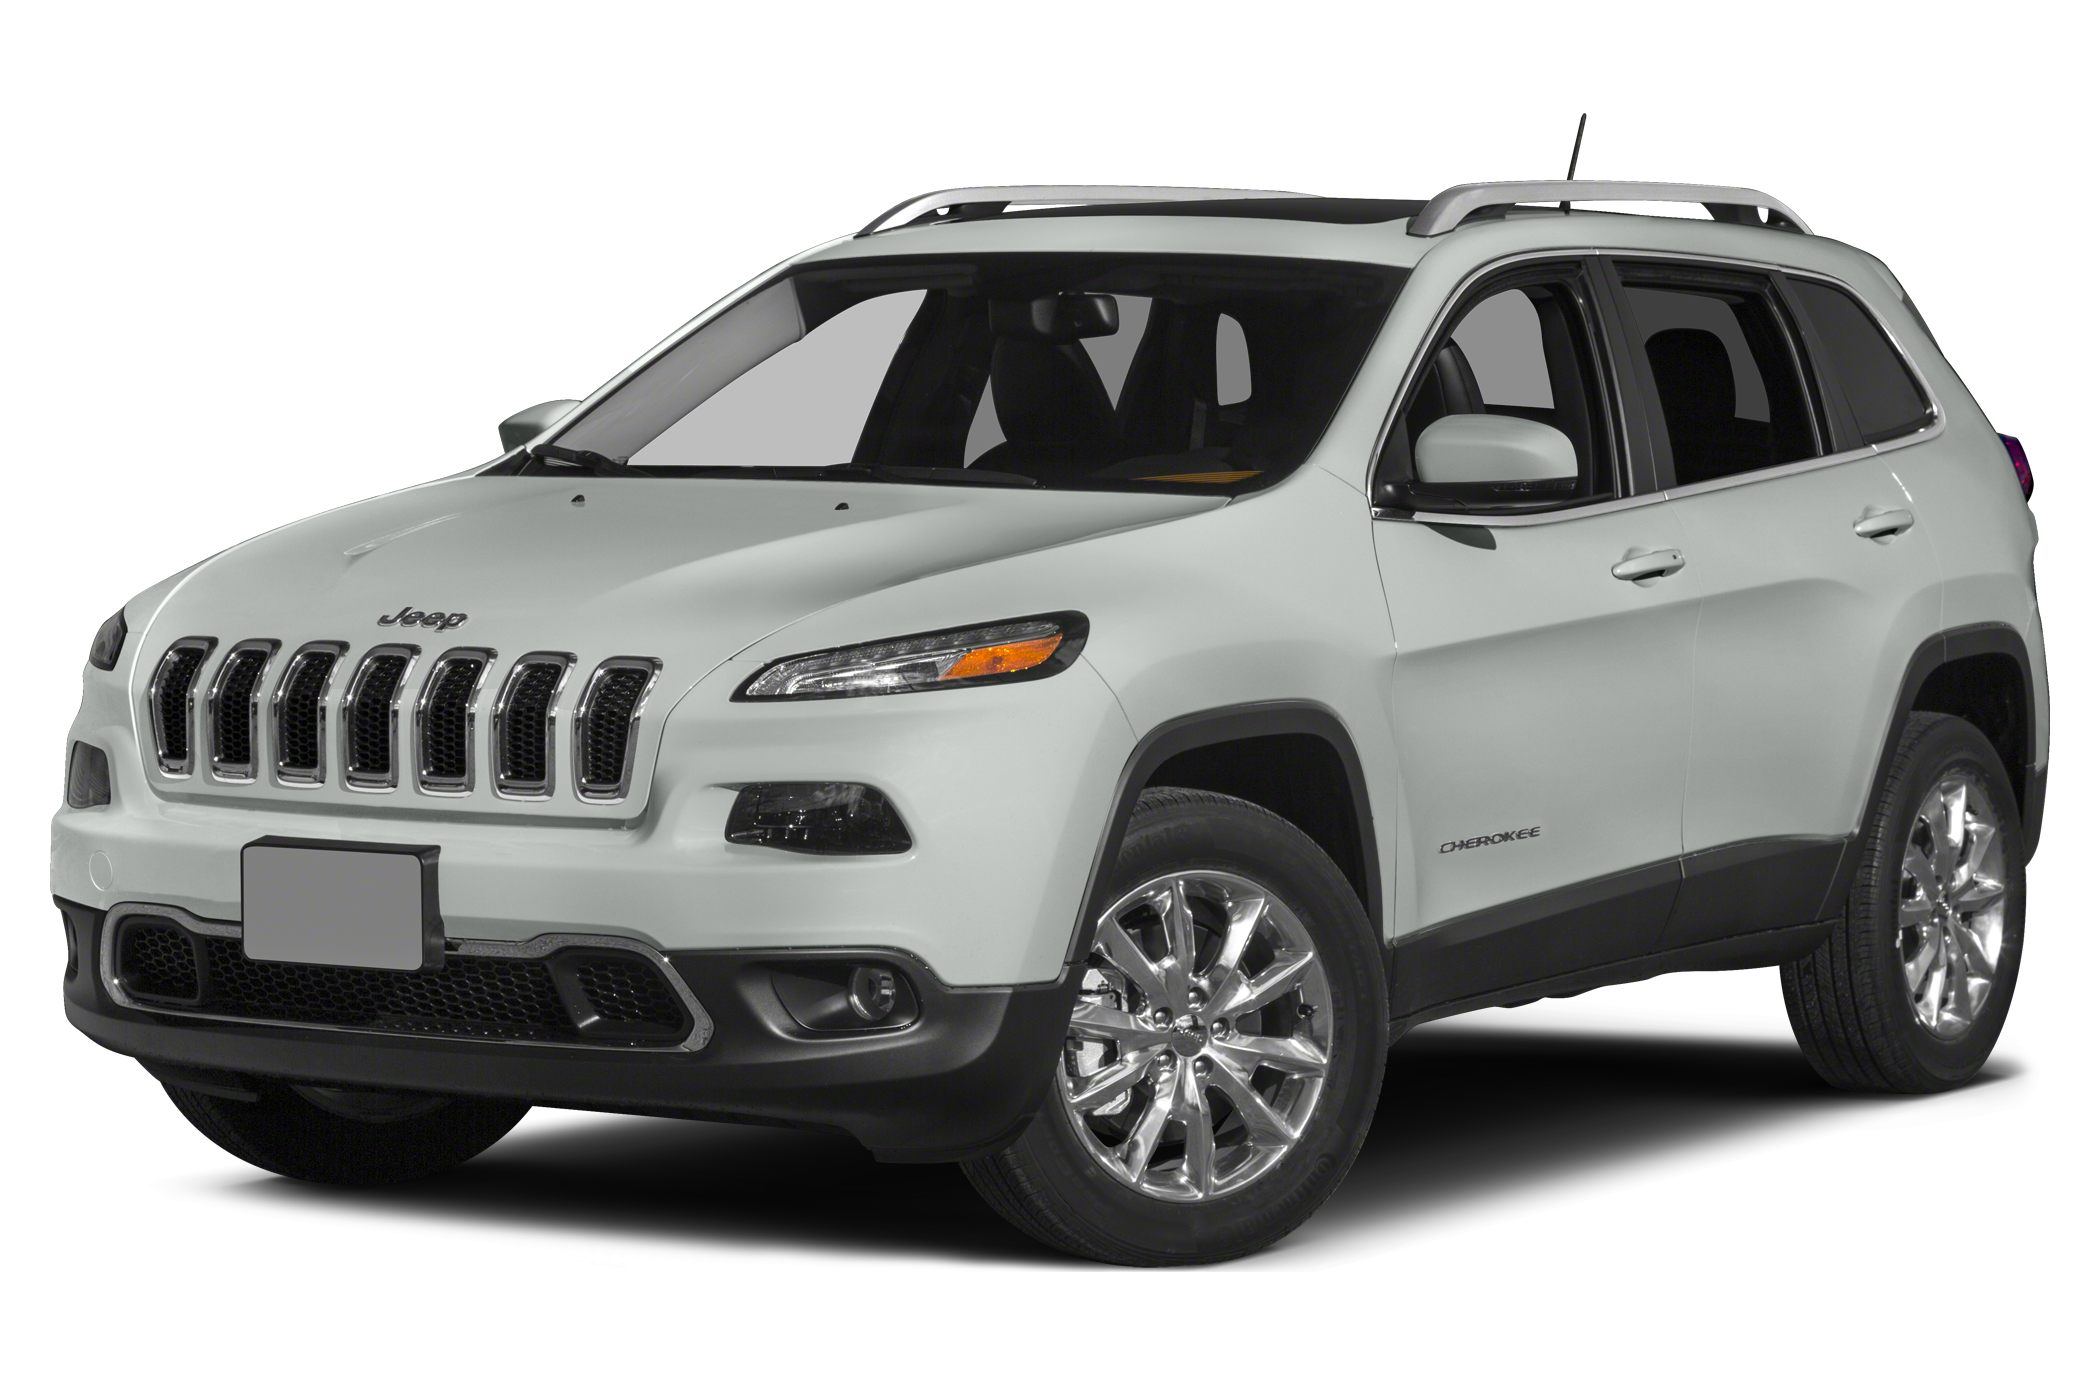 2015 Jeep Cherokee Limited SUV for sale in Tacoma for $38,555 with 12 miles.